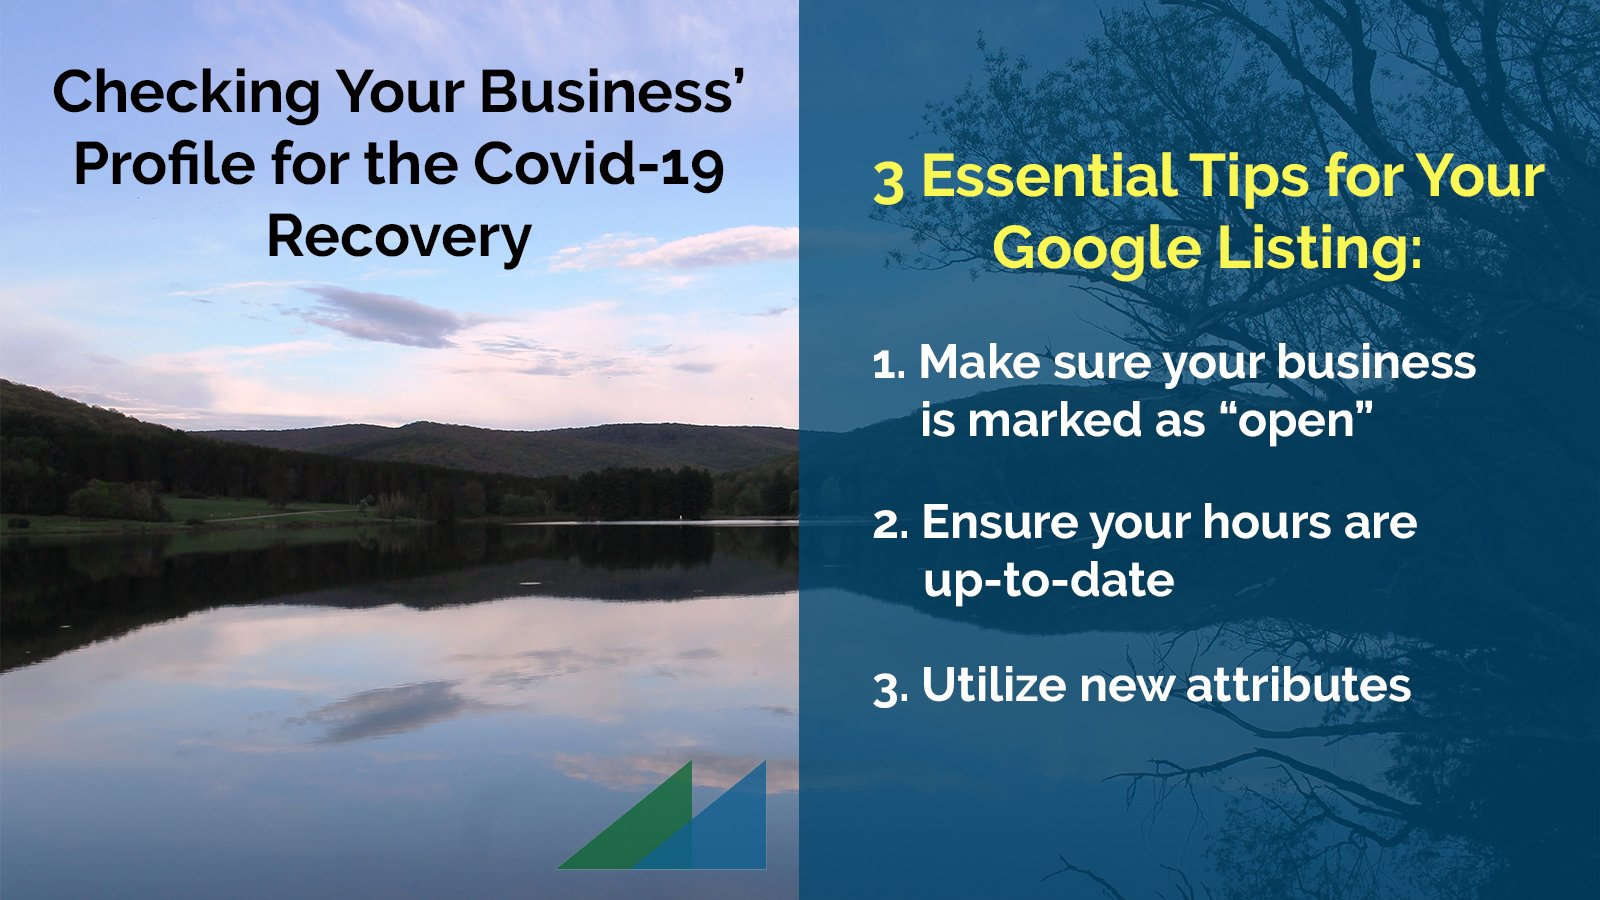 Checking Your Business' Profile for the Covid-19 Recovery